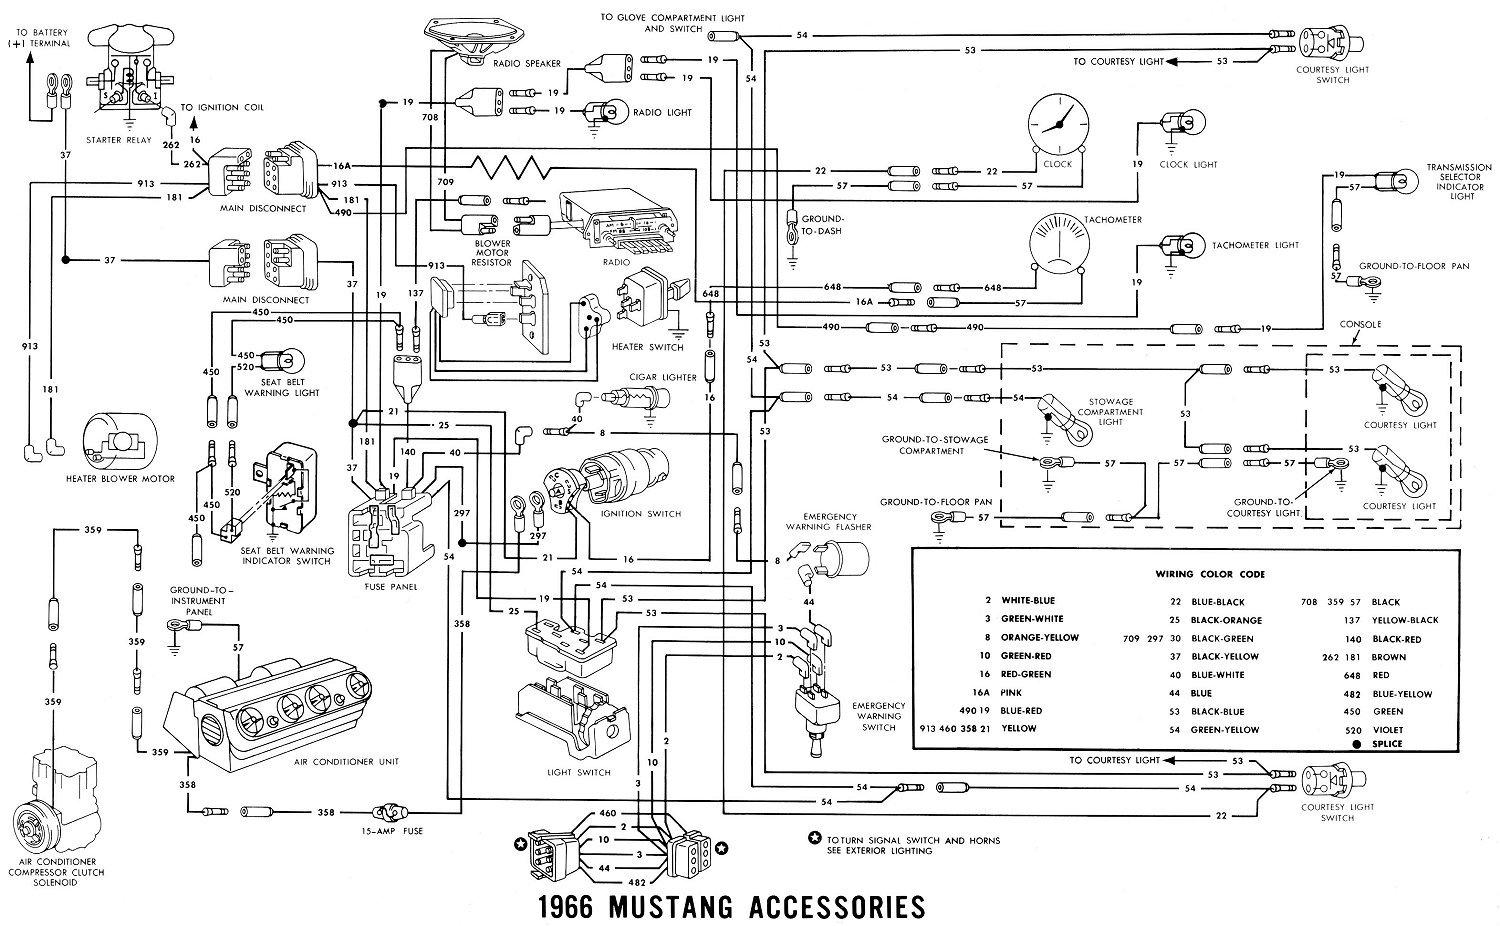 66acces1 1969 mustang dash wiring diagram 1969 mustang wiring routing 1967 mustang instrument cluster wiring diagram at sewacar.co